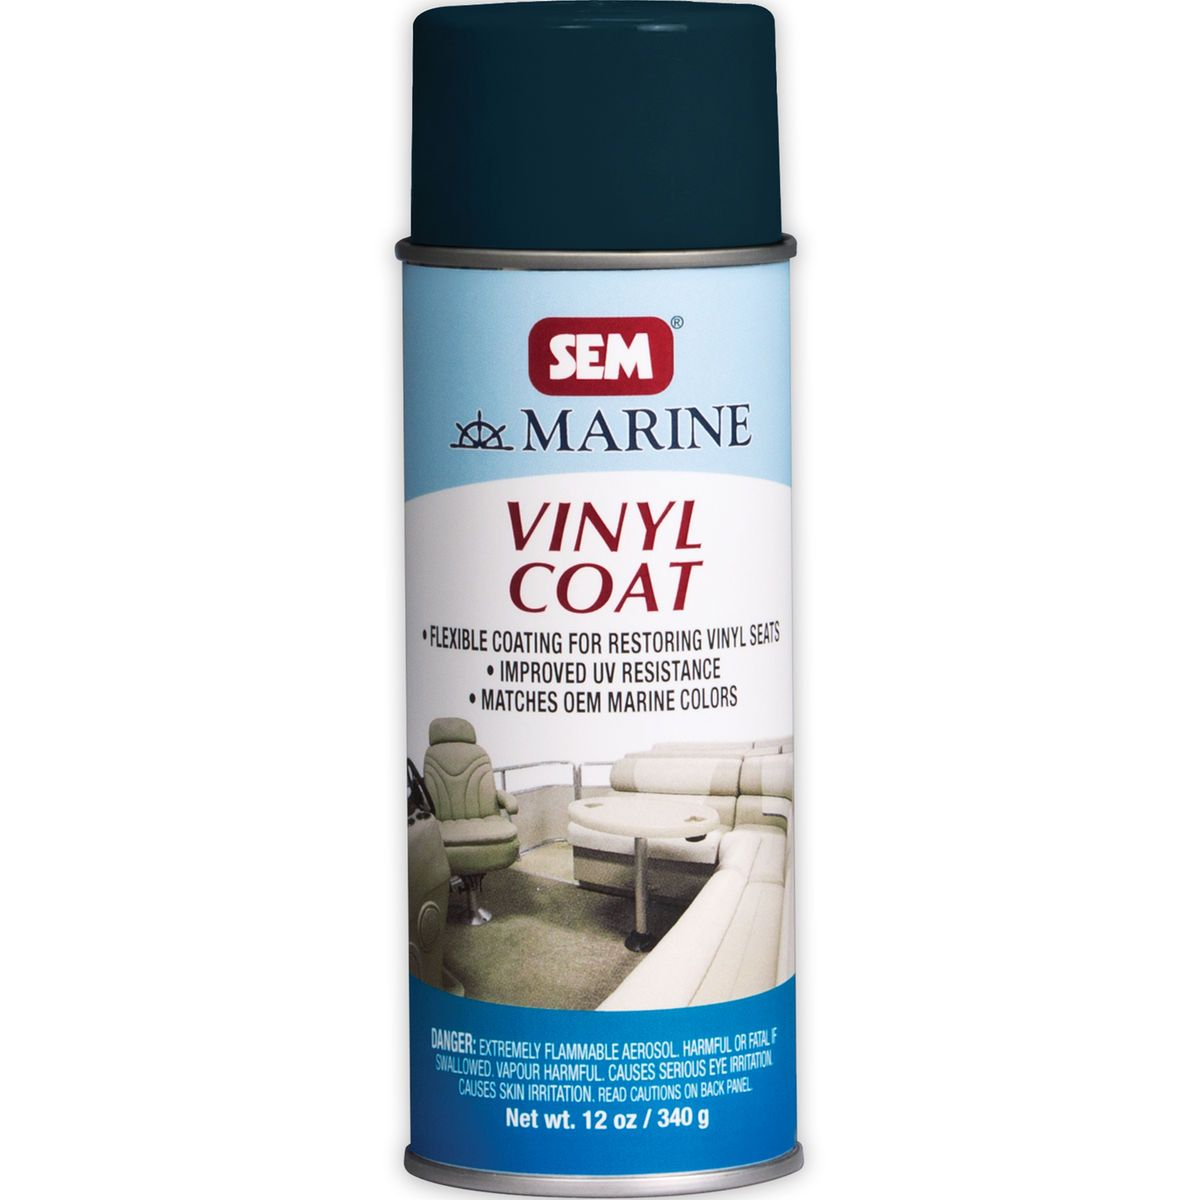 Uncategorized Vinyl Coat Paint sem marine vinyl coat spray overtons boat paint is an elastomeric coating formulated to match restore or change the color of most surfaces and rigi